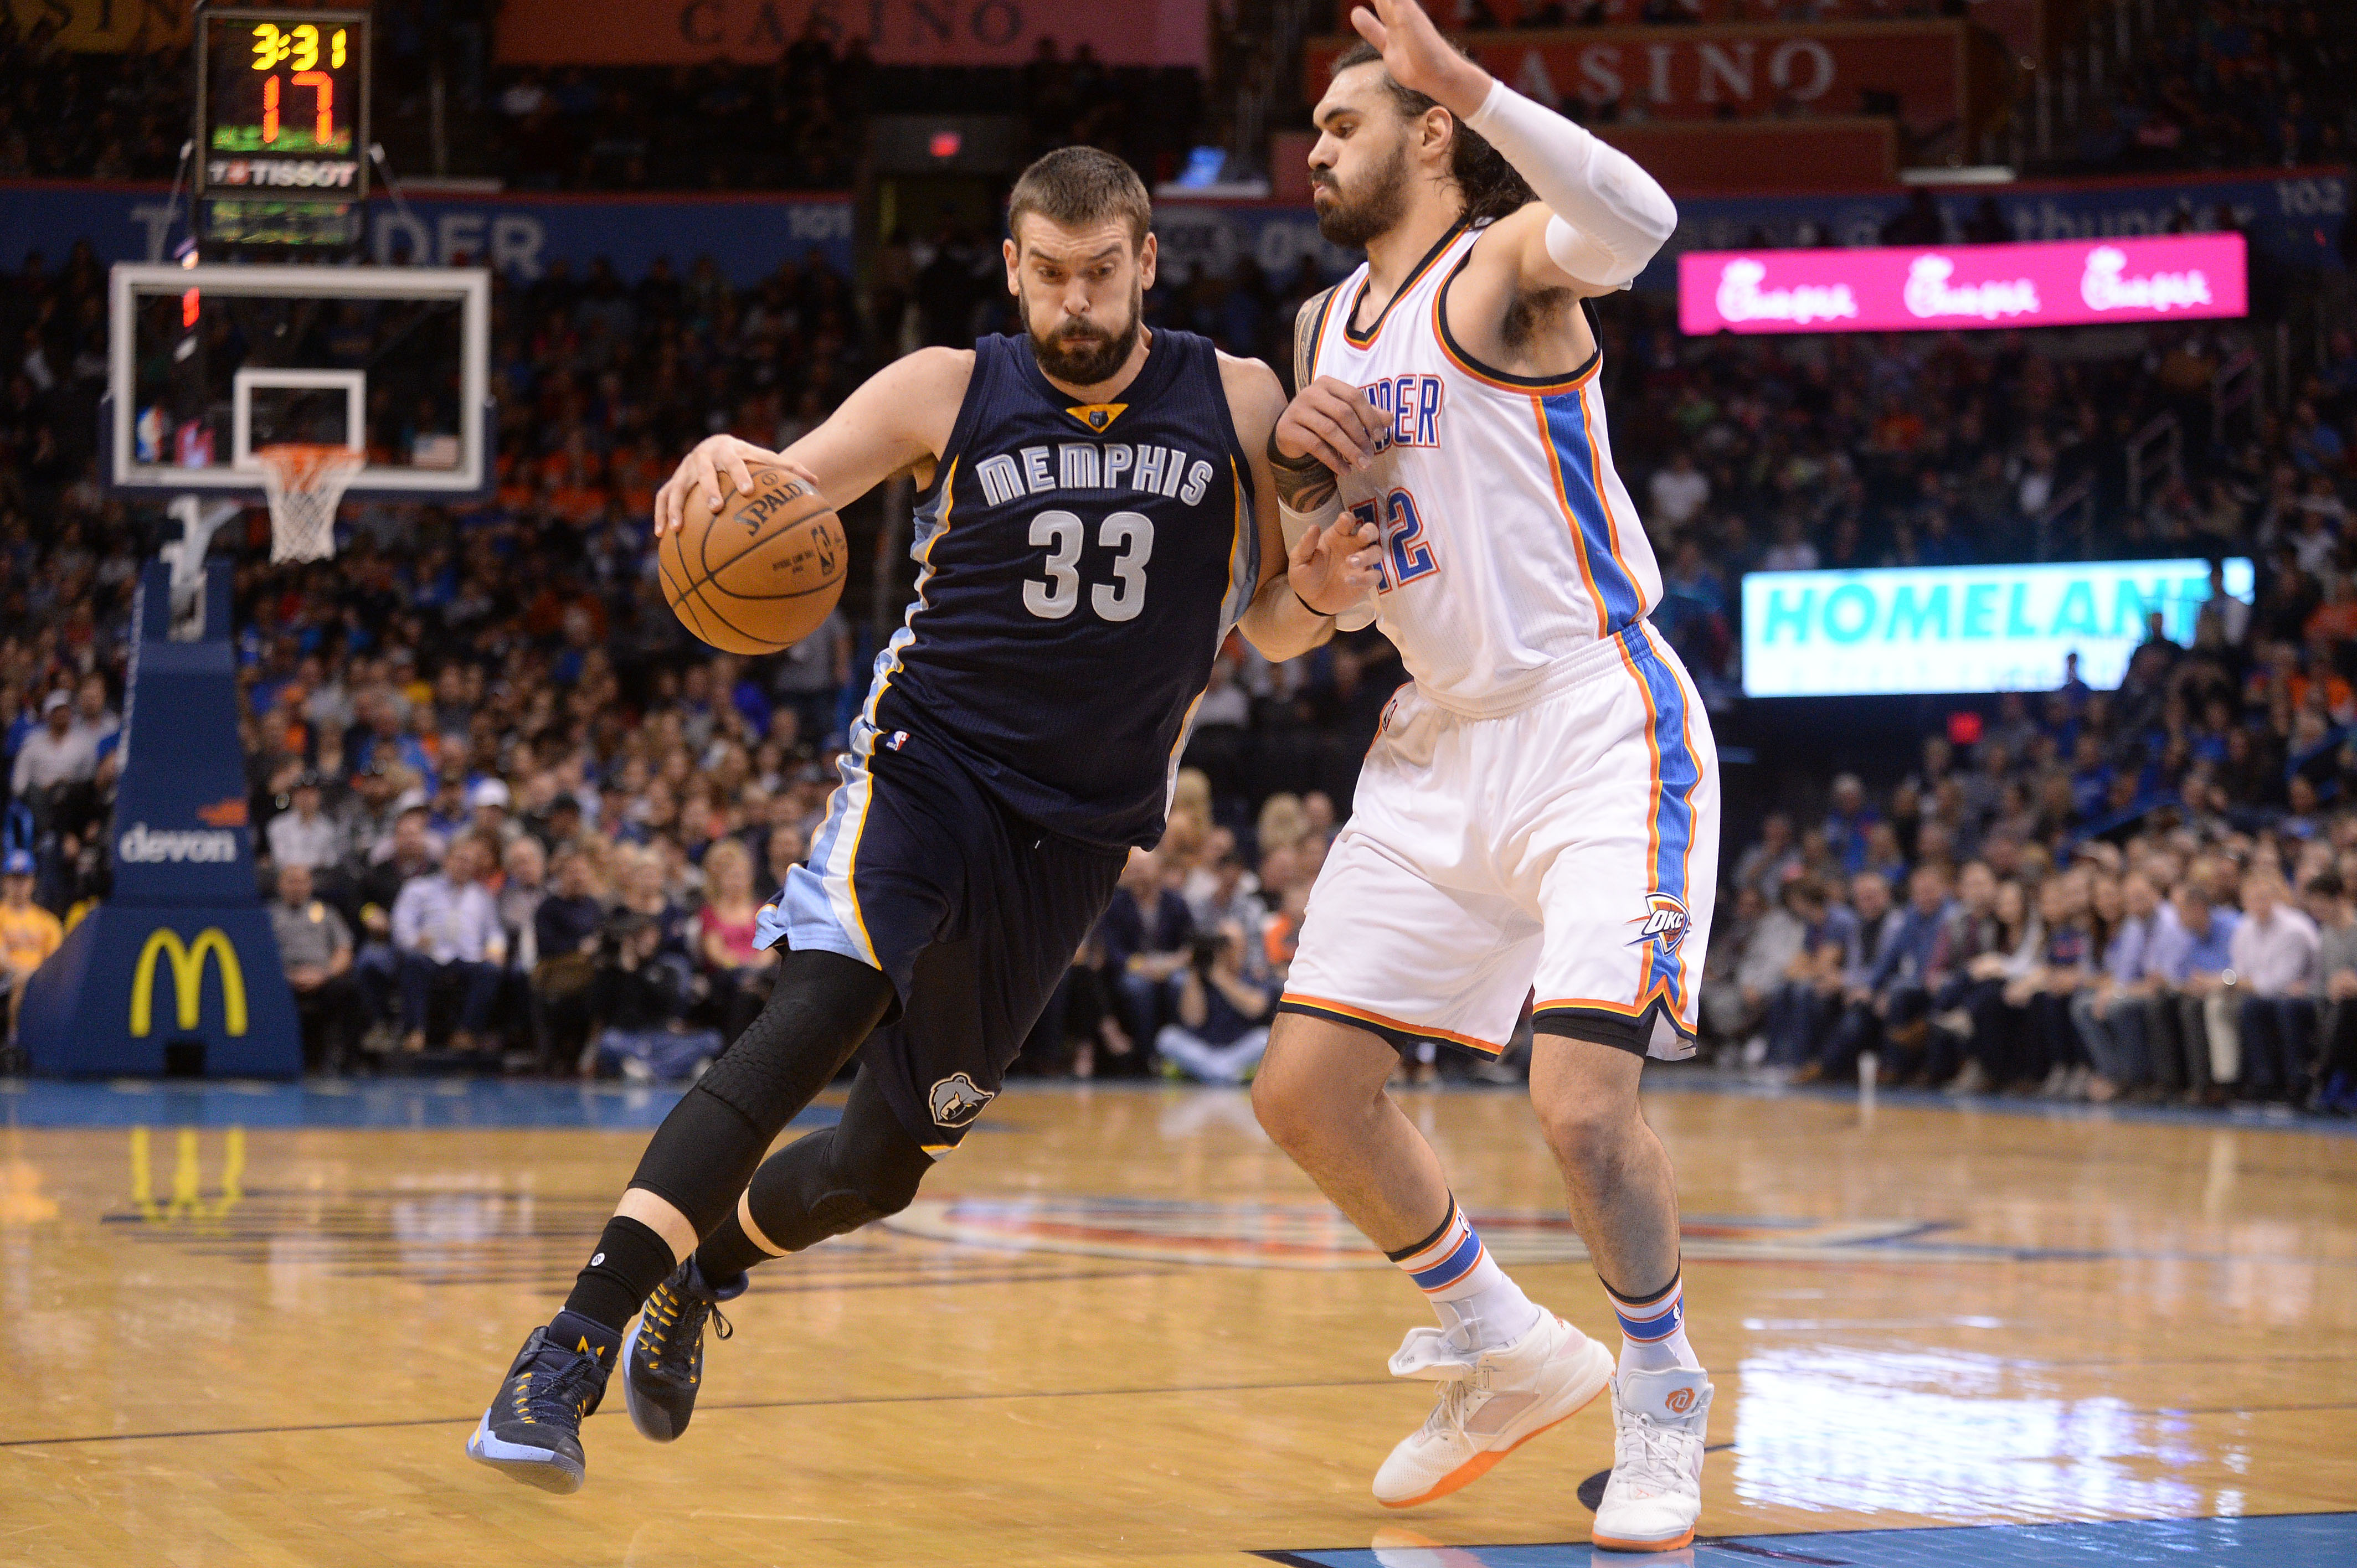 Feb 3, 2017; Oklahoma City, OK, USA; Memphis Grizzlies center Marc Gasol (33) drives to the basket in front of Oklahoma City Thunder center Steven Adams (12) during the second quarter at Chesapeake Energy Arena. Mandatory Credit: Mark D. Smith-USA TODAY Sports